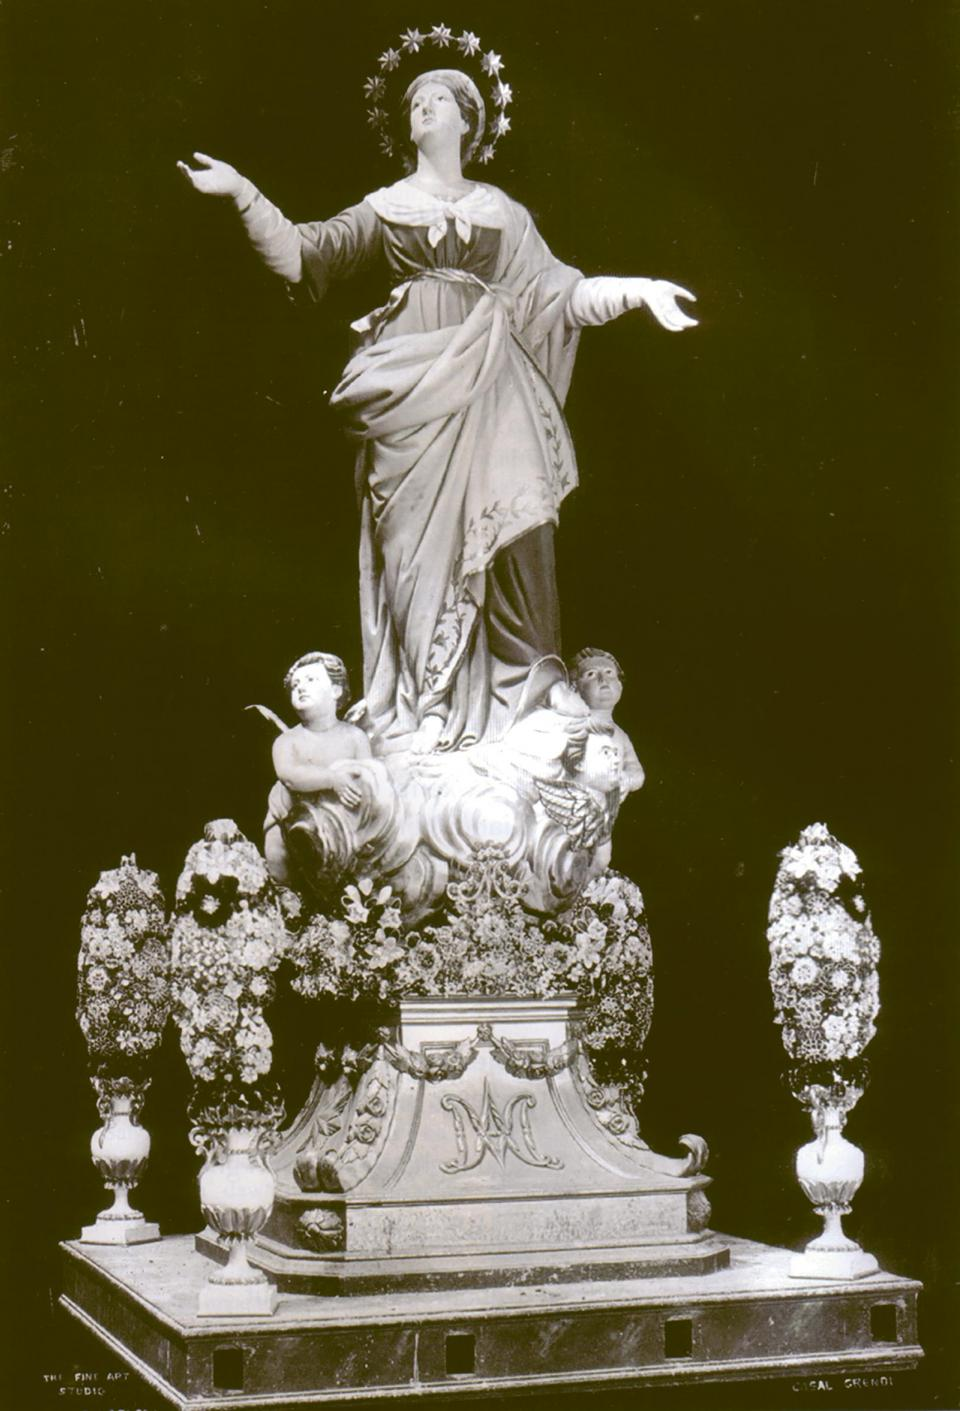 The statue of the Assumption as originally sculptured for the Qrendi parish church in 1837. Photo: St Mary's philarmonic society, Qrendi